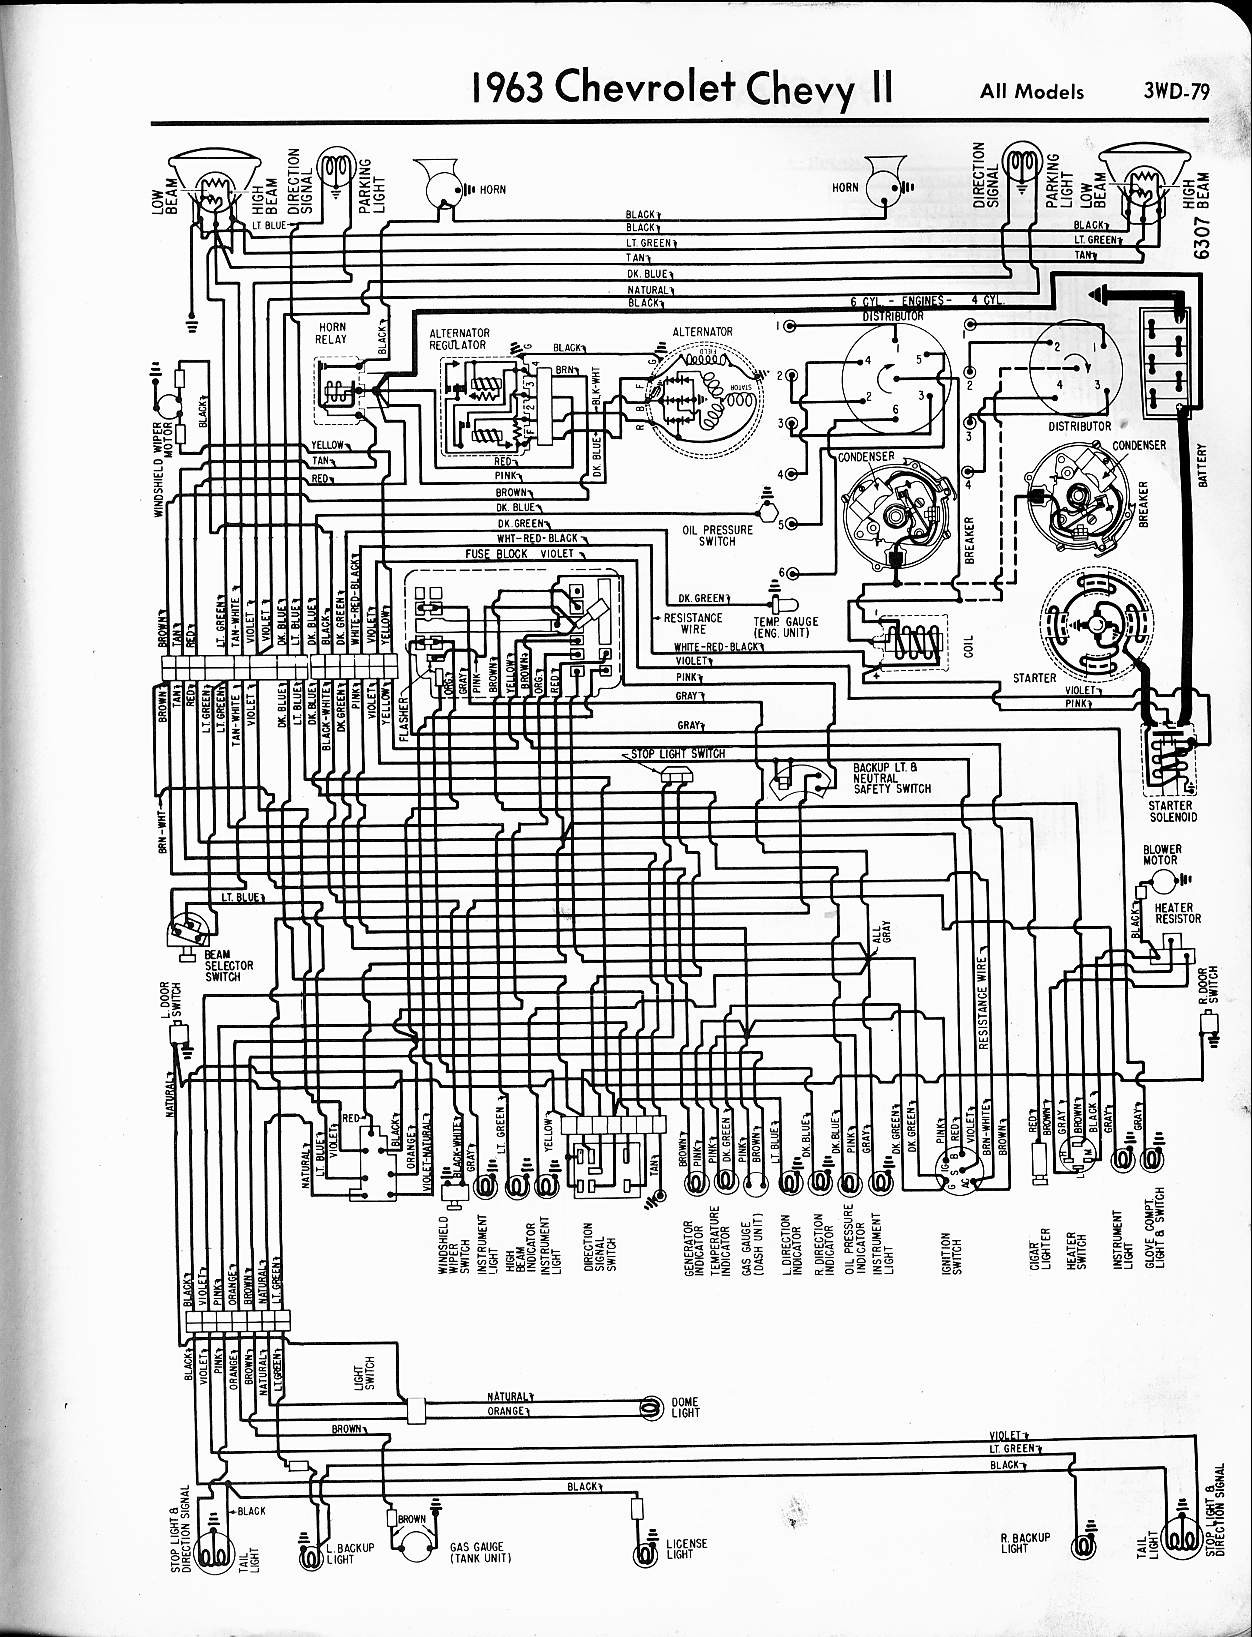 Wiring Diagram 1965 Chevy Impala | Wiring Diagram on 1961 chevrolet truck, 1961 ford apache, 1958 gmc apache, chippewa apache, 1961 chevrolet deluxe, chevy apache, jeep apache, 1961 chevrolet stepside,